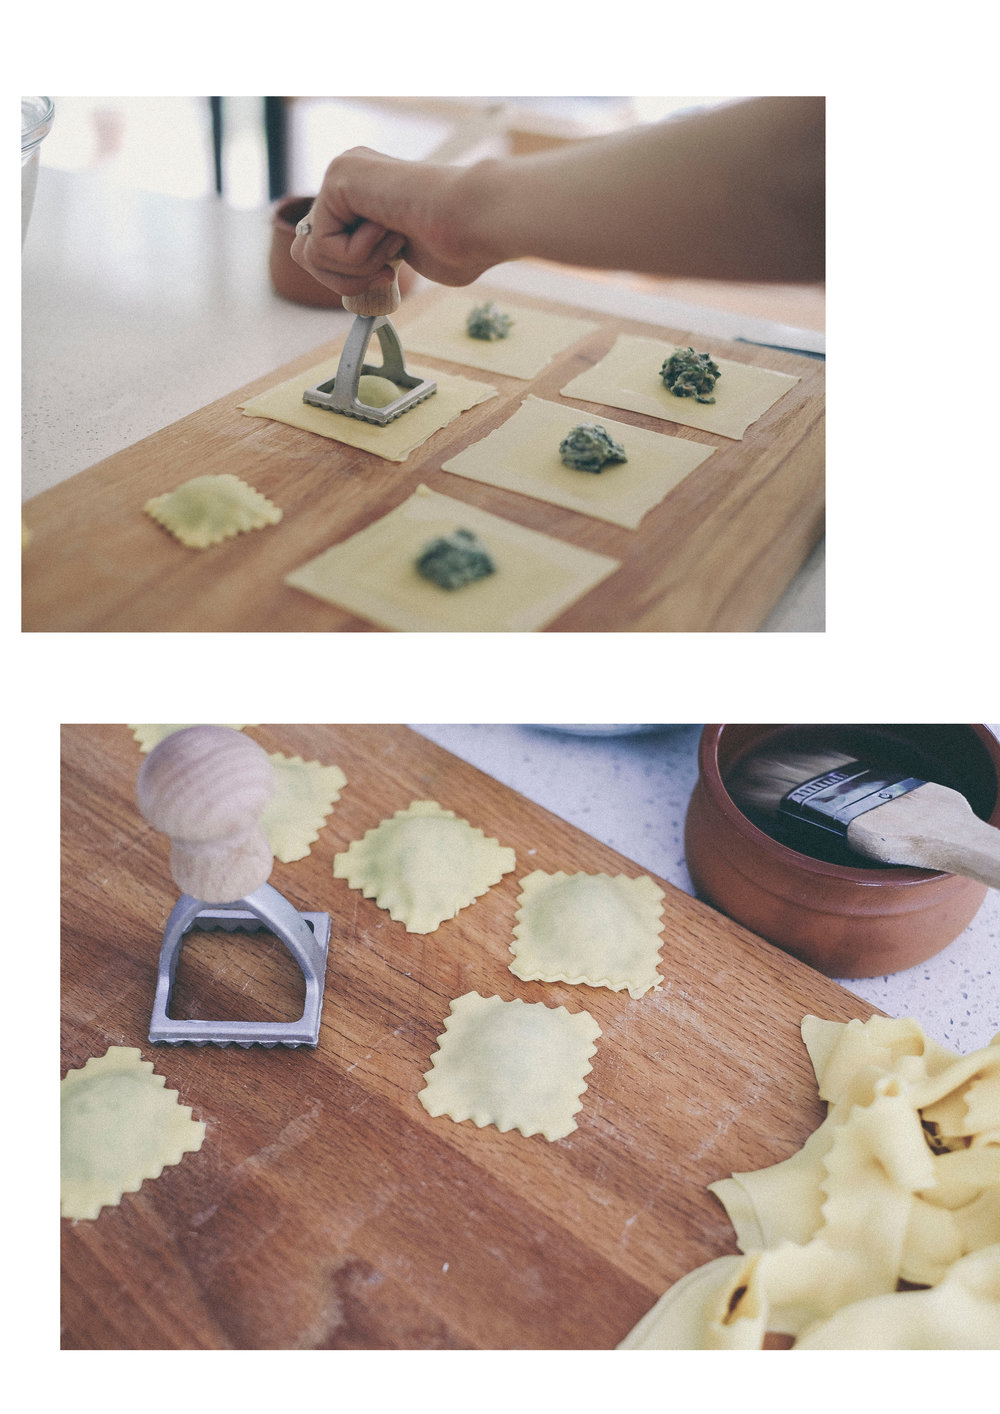 dérrive recipe - the most delicate chestnut, spinach and ricotta ravioli www.derrive.com